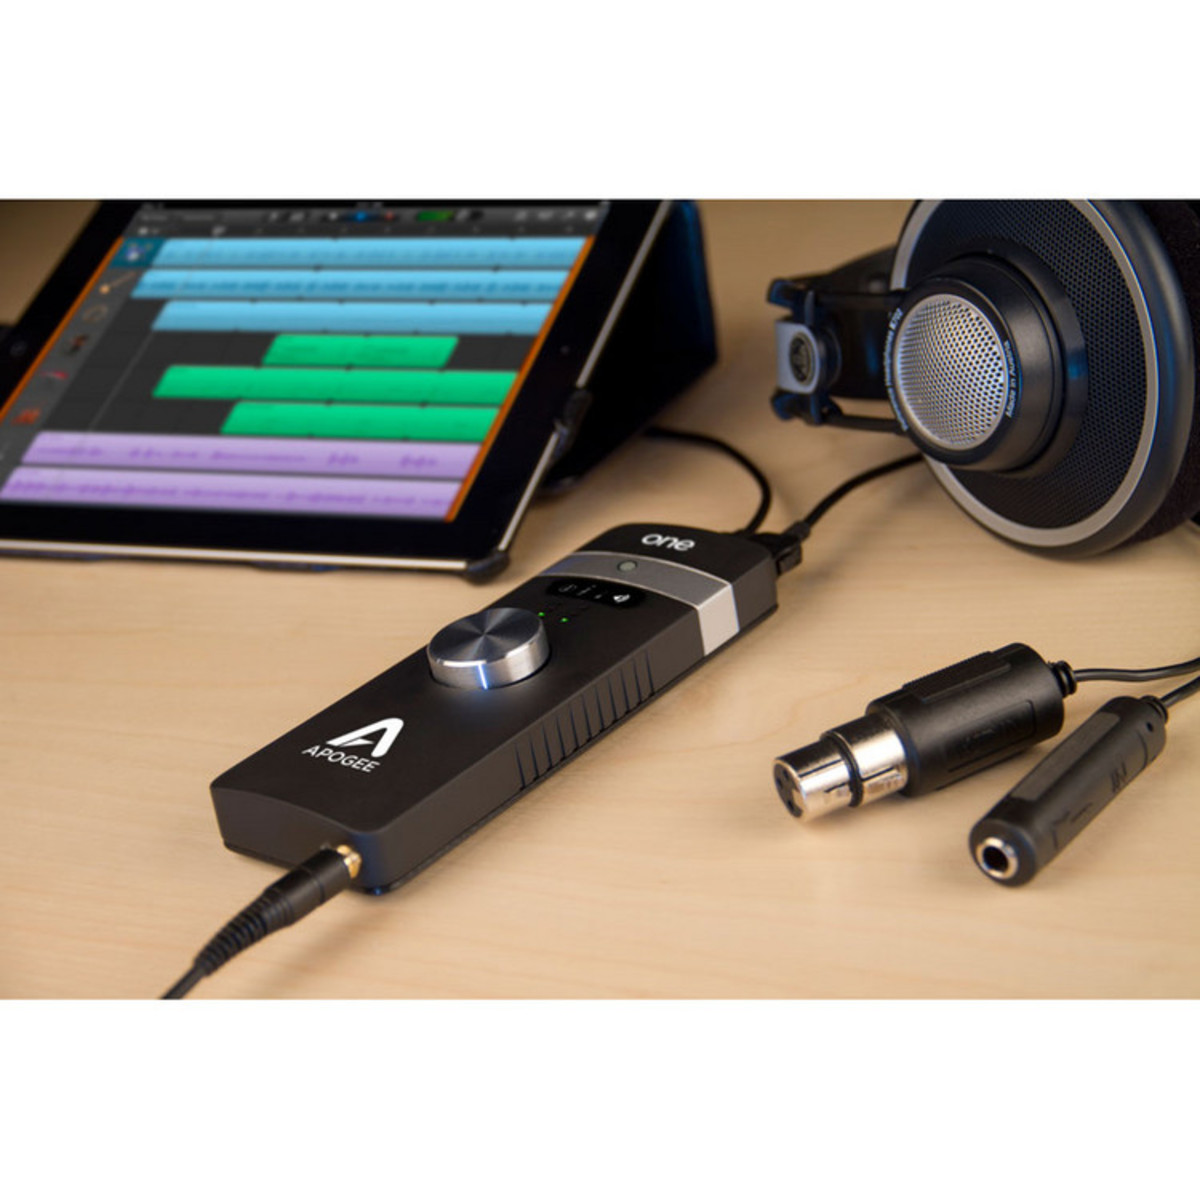 Apogee One Usb Mic And Audio Interface For Ipad Mac At Gear4music Wiring Harness Loading Zoom